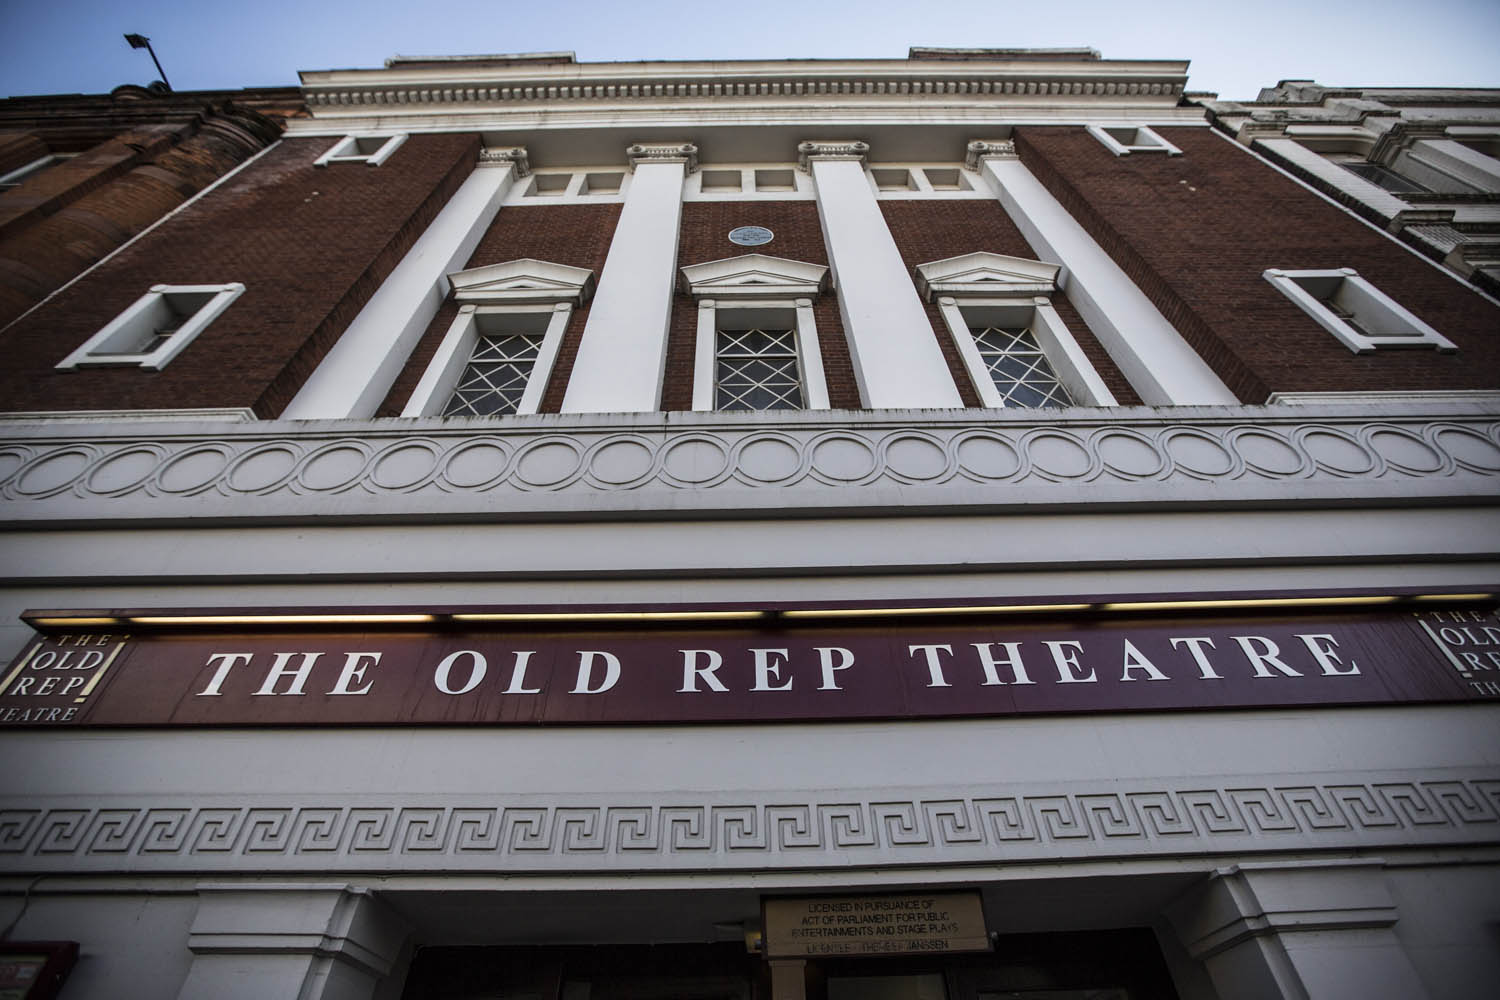 A collection of images from The Rep in Birmingham on it's 100th anniversary.